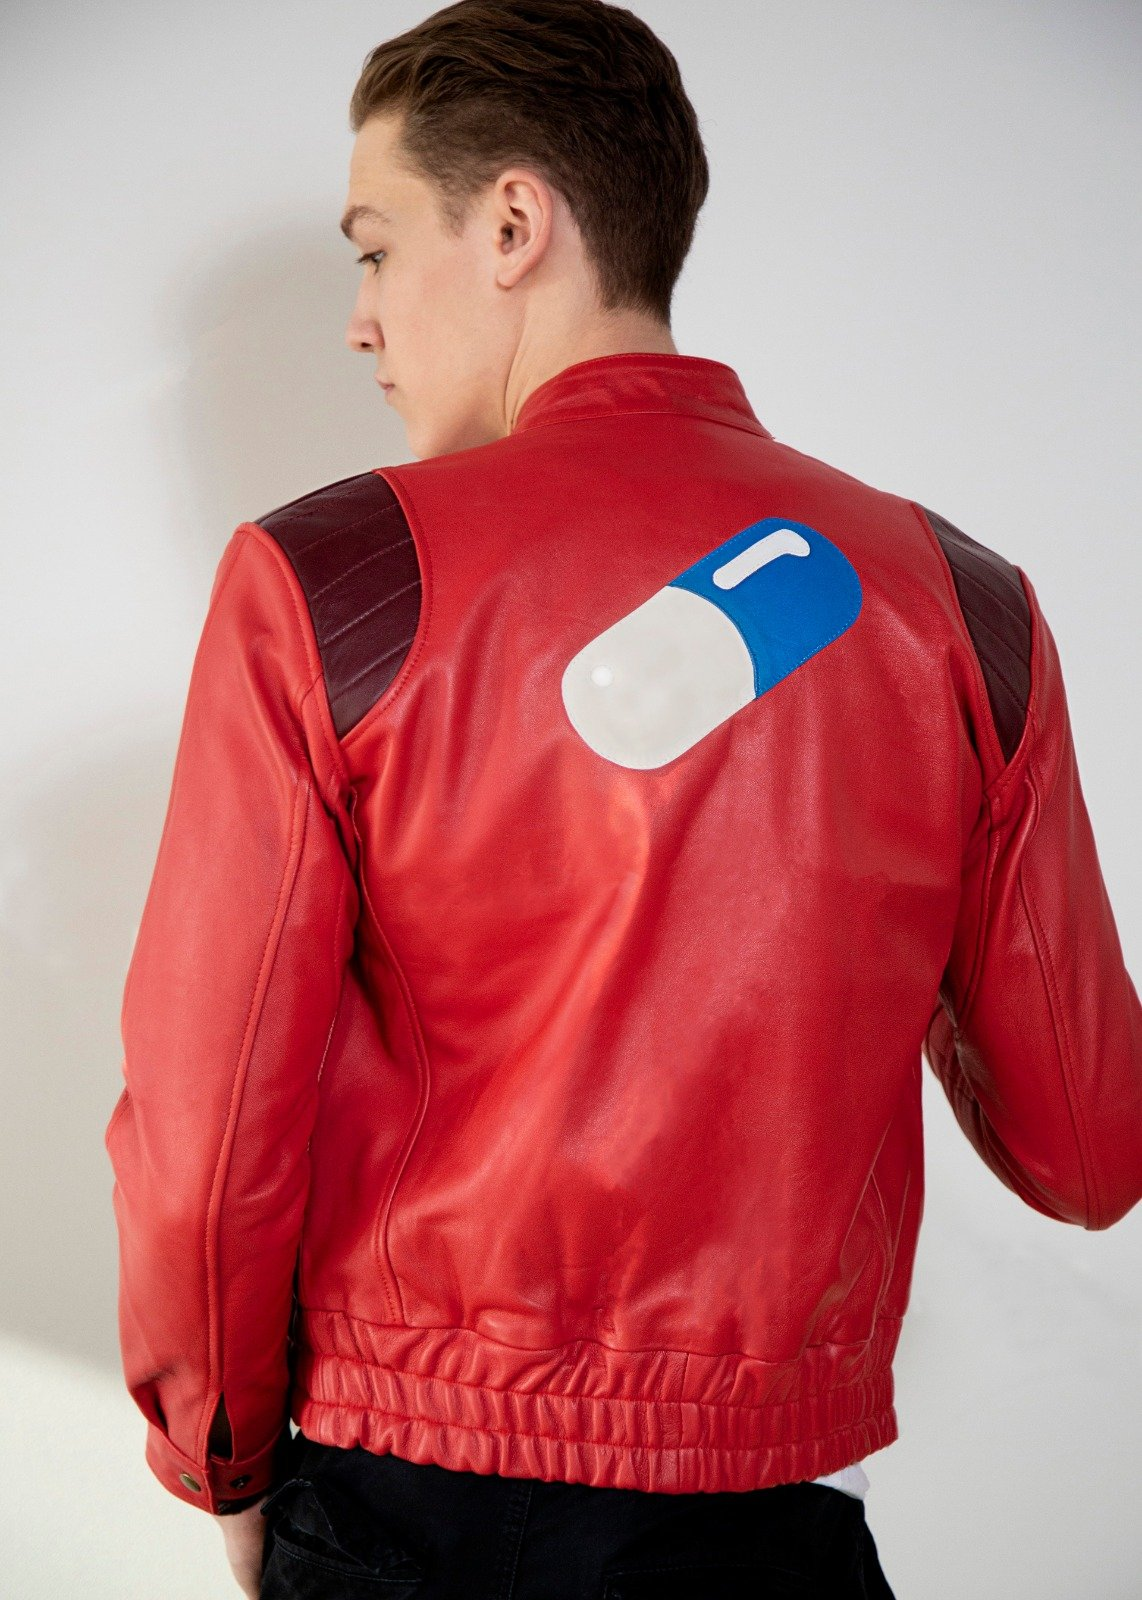 Mens Akira Kaneda Leather Jacket Red Pill Manga Motorcycle